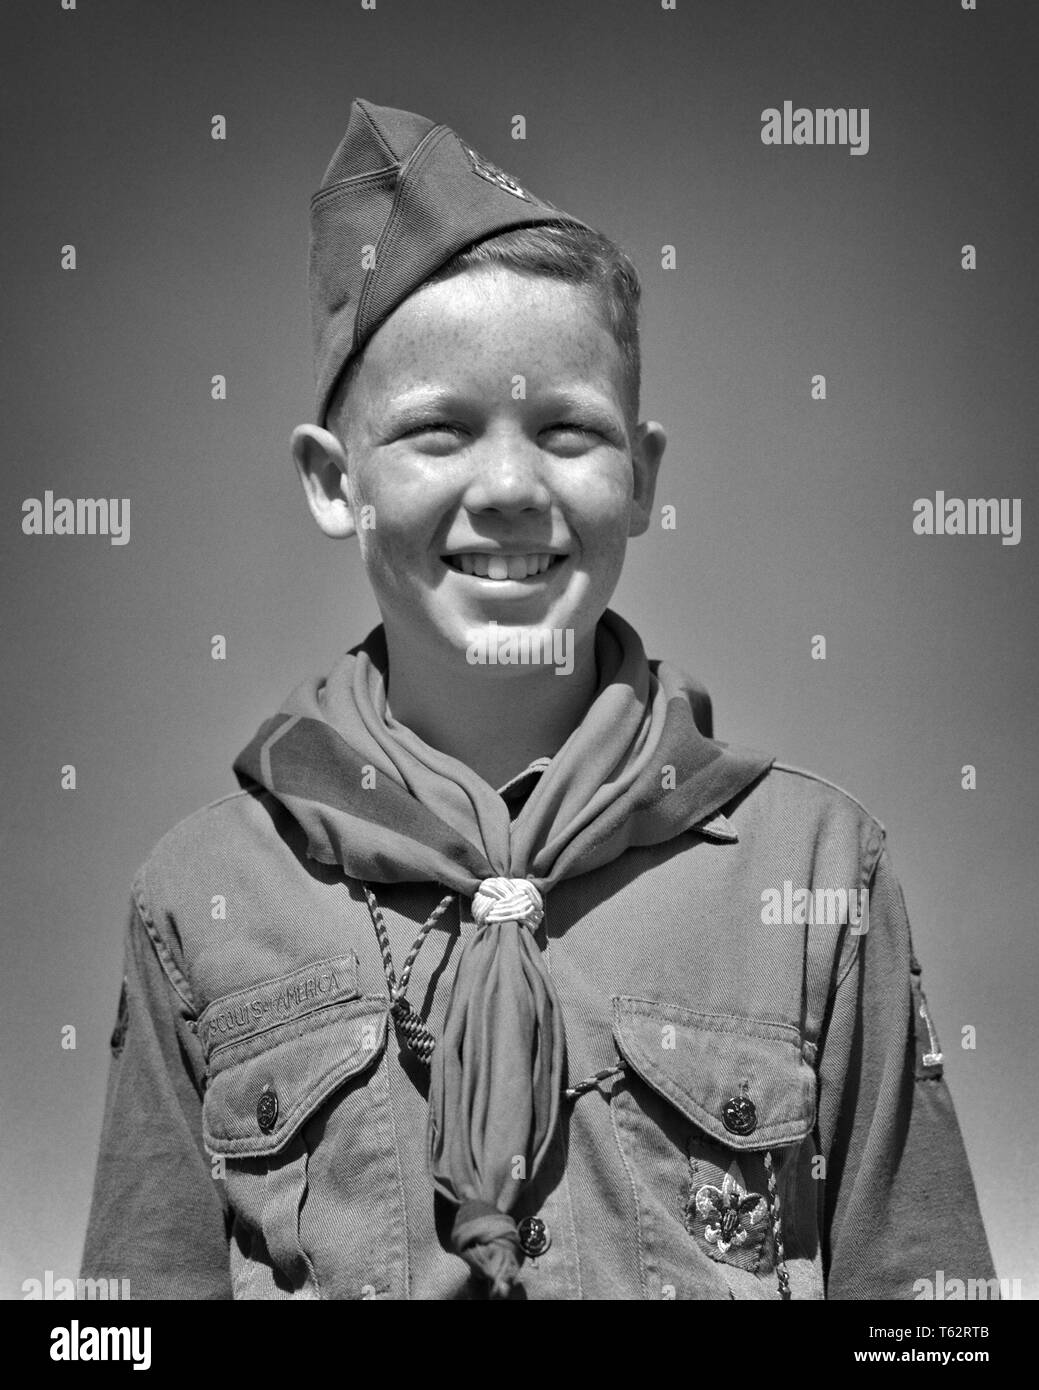 1950s SMILING PRETEEN BOY SCOUT IN UNIFORM CAP SHIRT NECKERCHIEF STANDING LOOKING AT CAMERA - b6115 HAR001 HARS HOME LIFE UNITED STATES HALF-LENGTH INSPIRATION SCOUTS UNITED STATES OF AMERICA MALES SPIRITUALITY CONFIDENCE EXPRESSIONS B&W EYE CONTACT FREEDOM HAPPINESS CHEERFUL ADVENTURE STRENGTH CHOICE EXCITEMENT KNOWLEDGE LEADERSHIP DIRECTION PRIDE NECKERCHIEF IN PRETEEN SMILES BOY SCOUT THRIFTY CONCEPTUAL COURTEOUS FRIENDLY HELPFUL JOYFUL KIND REVERENT STYLISH TRUSTWORTHY EAGER GROWTH JUVENILES LOYAL PRE-TEEN PRE-TEEN BOY BE PREPARED BLACK AND WHITE BRAVE CAUCASIAN ETHNICITY HAR001 OBEDIENT - Stock Image